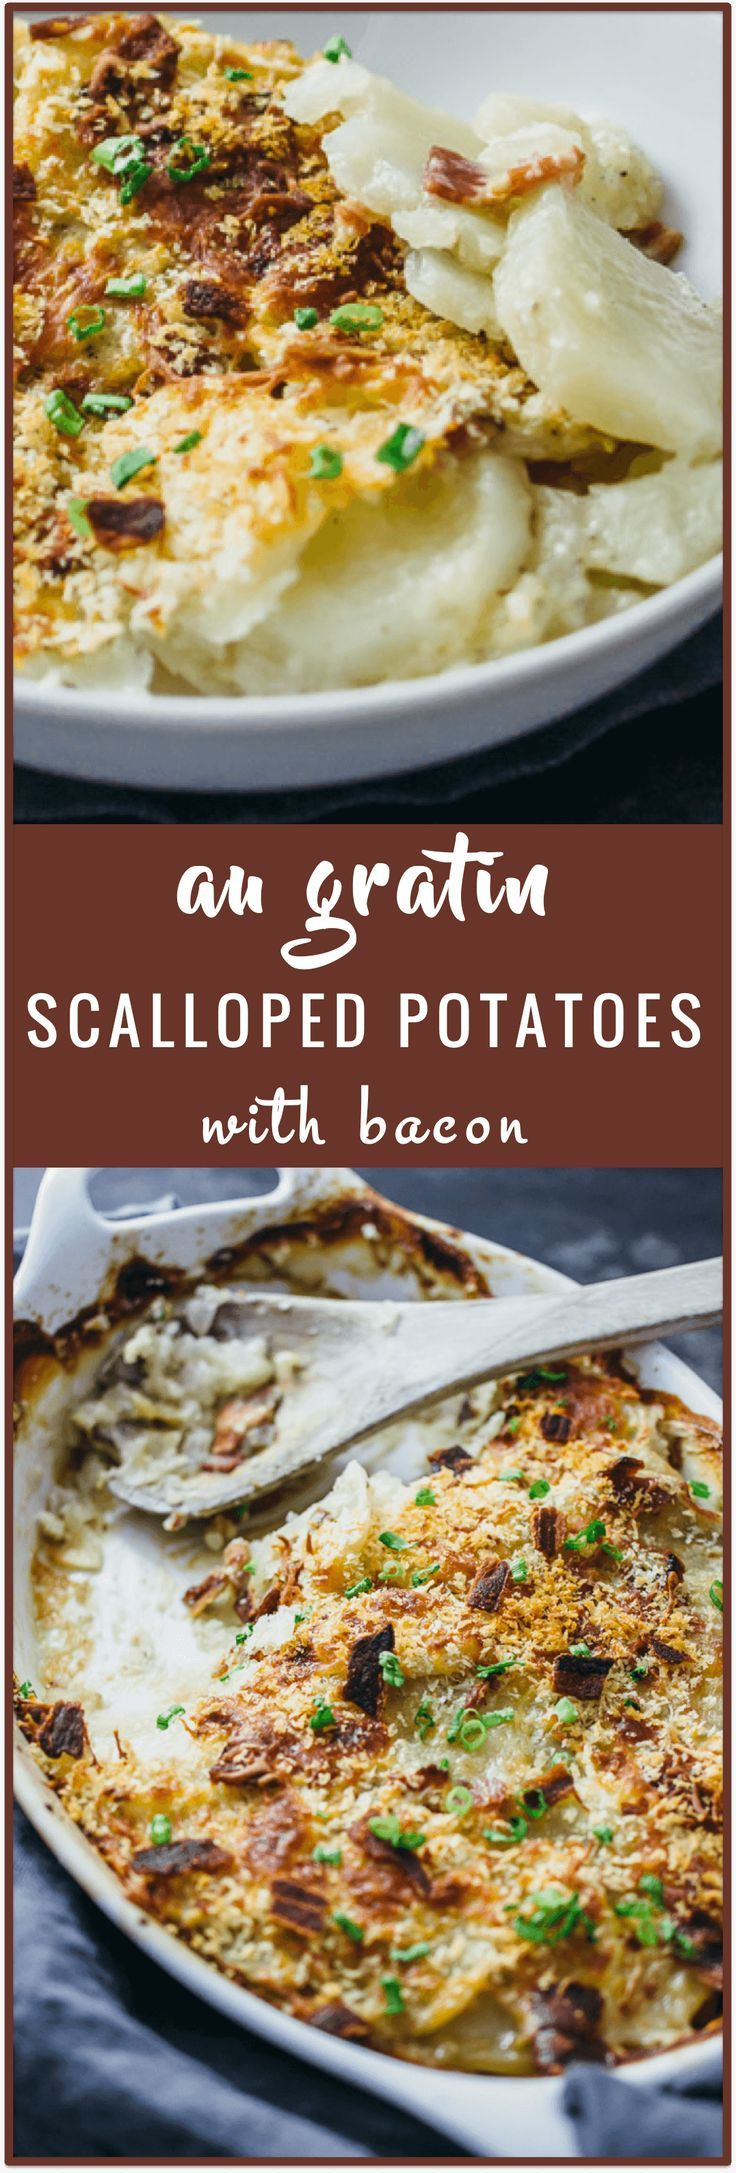 Scalloped potatoes au gratin with bacon - Here's an easy homemade recipe for…